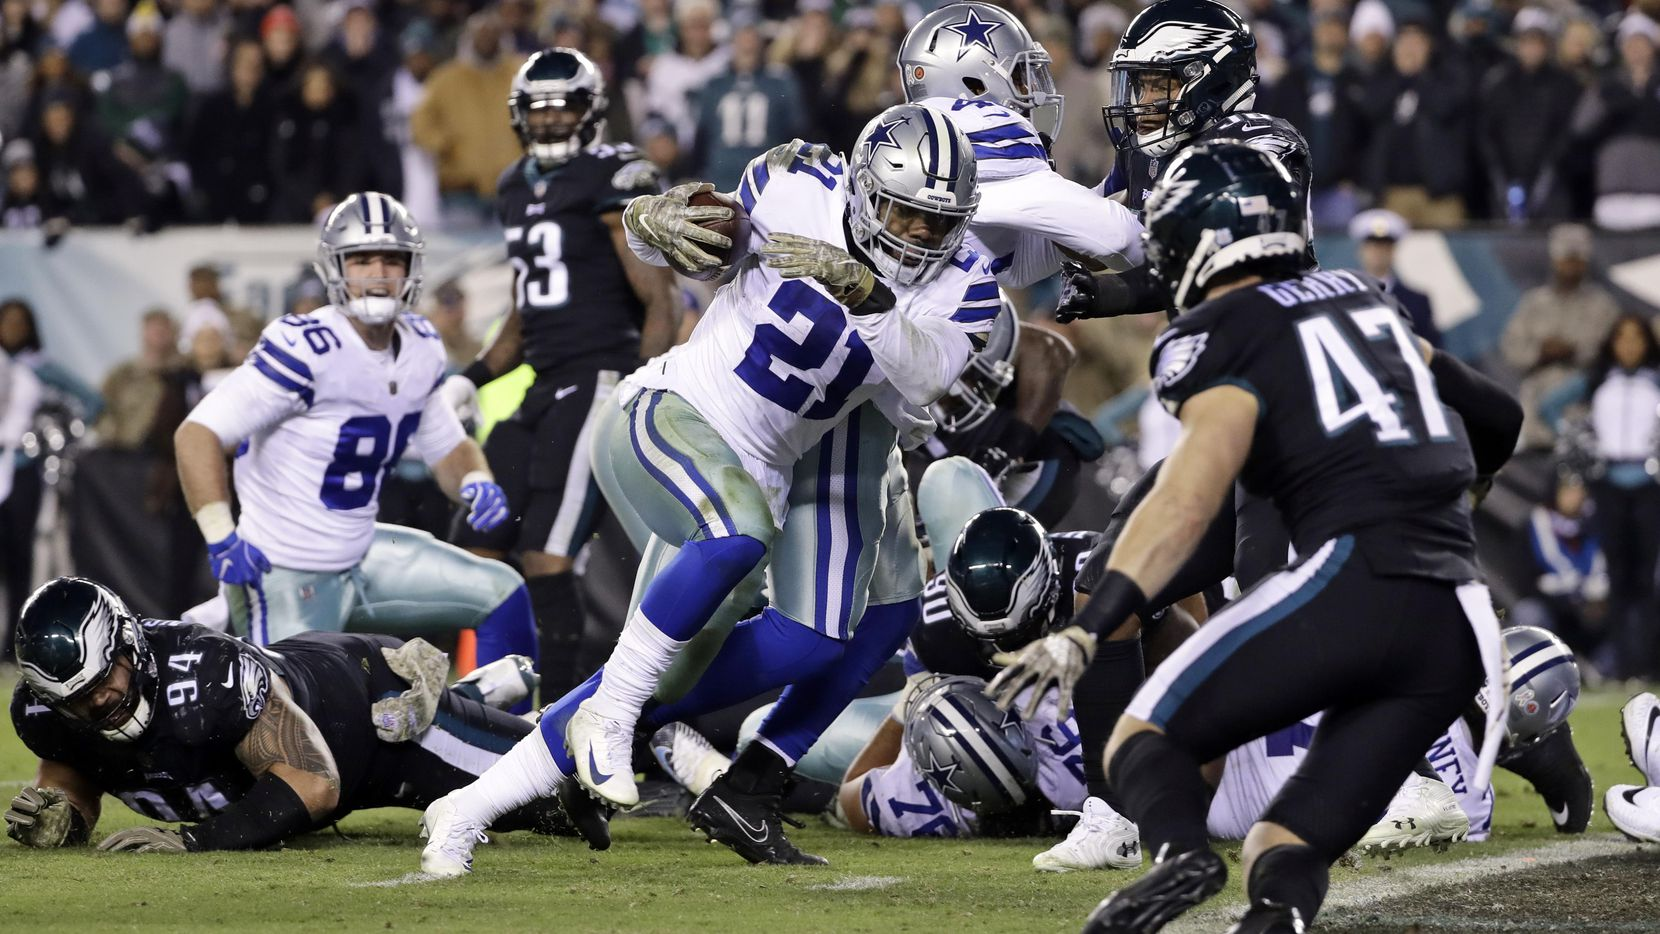 Ezekiel Elliott y los Cowboys vencieron 27-20 a los Eagles el domingo. (AP/Matt Slocum)